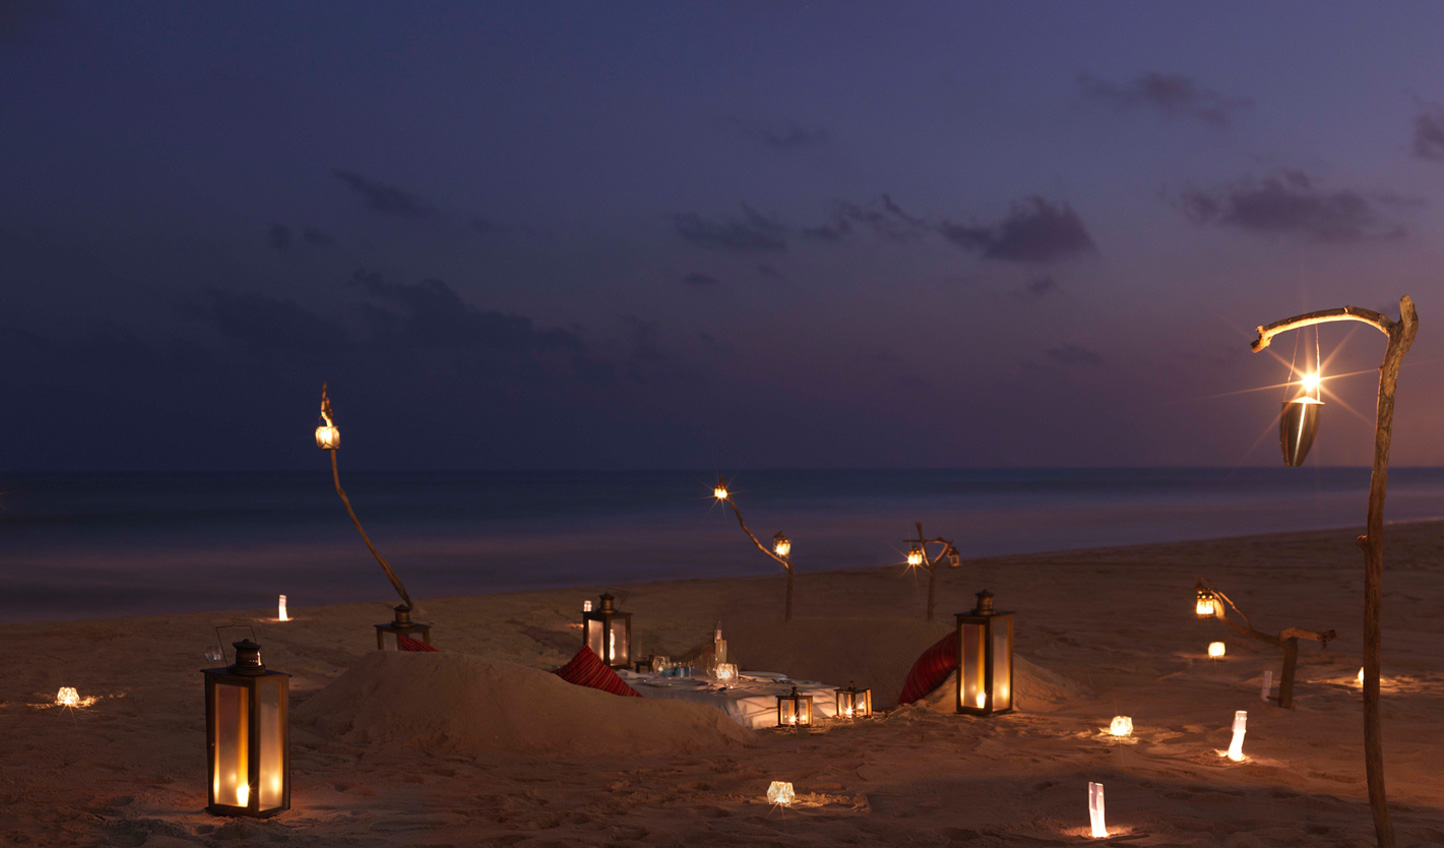 Dine on the soft sands of Anantara's private beach at candlelight